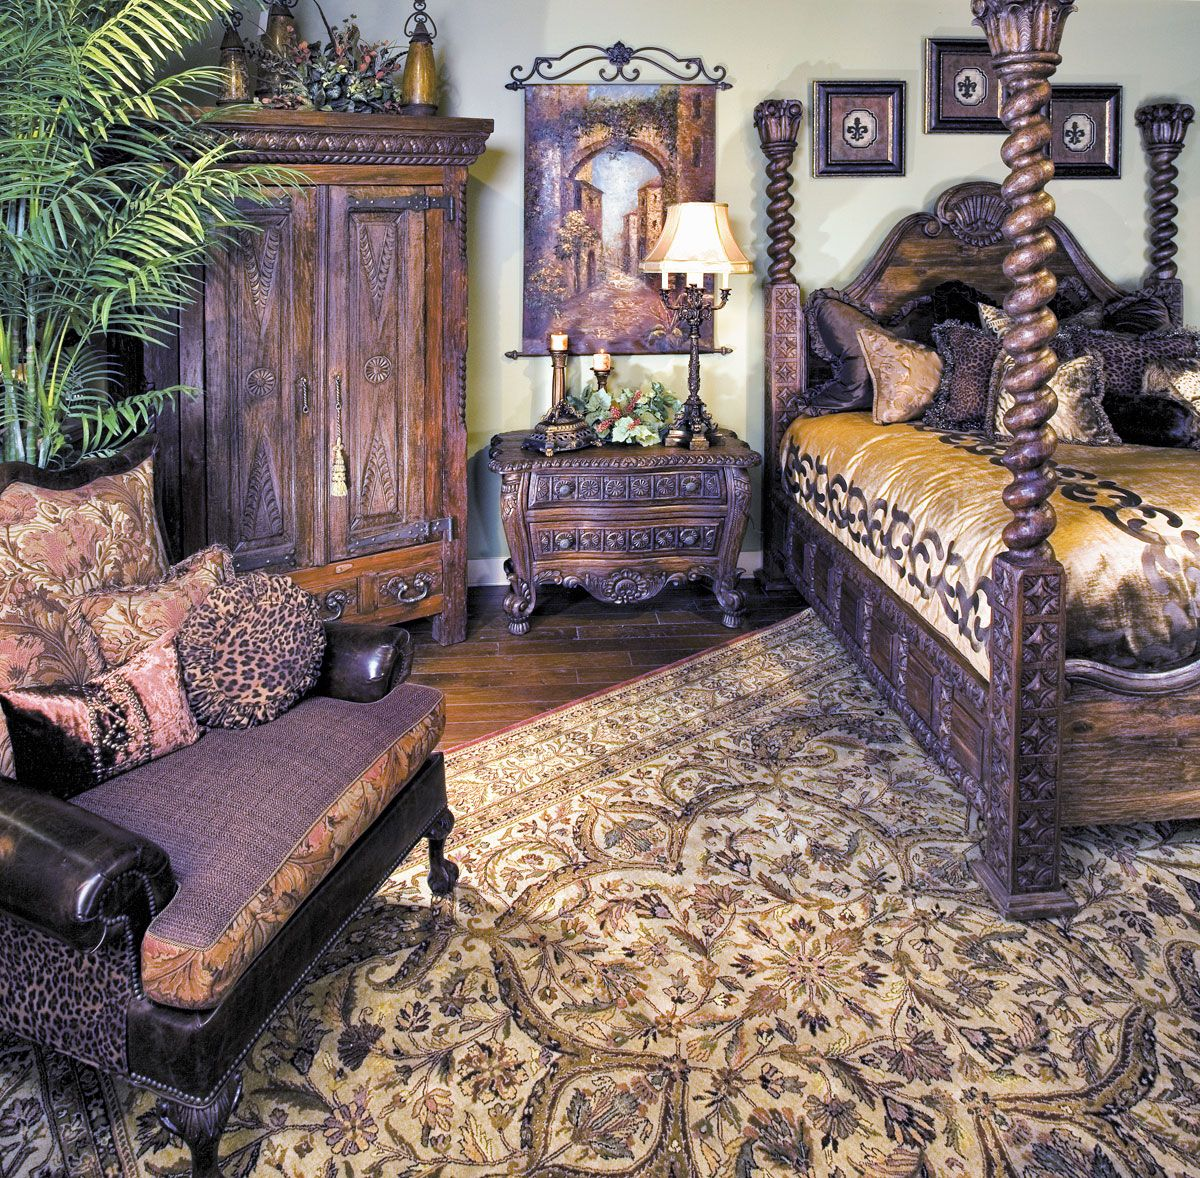 Old World Bedroom Decor Teenage Bedroom Furniture Nz Kids Bedroom Colour Ideas Bedroom Furniture And Decor: Nice Arrangement Pattern Of Rug And Furniture.